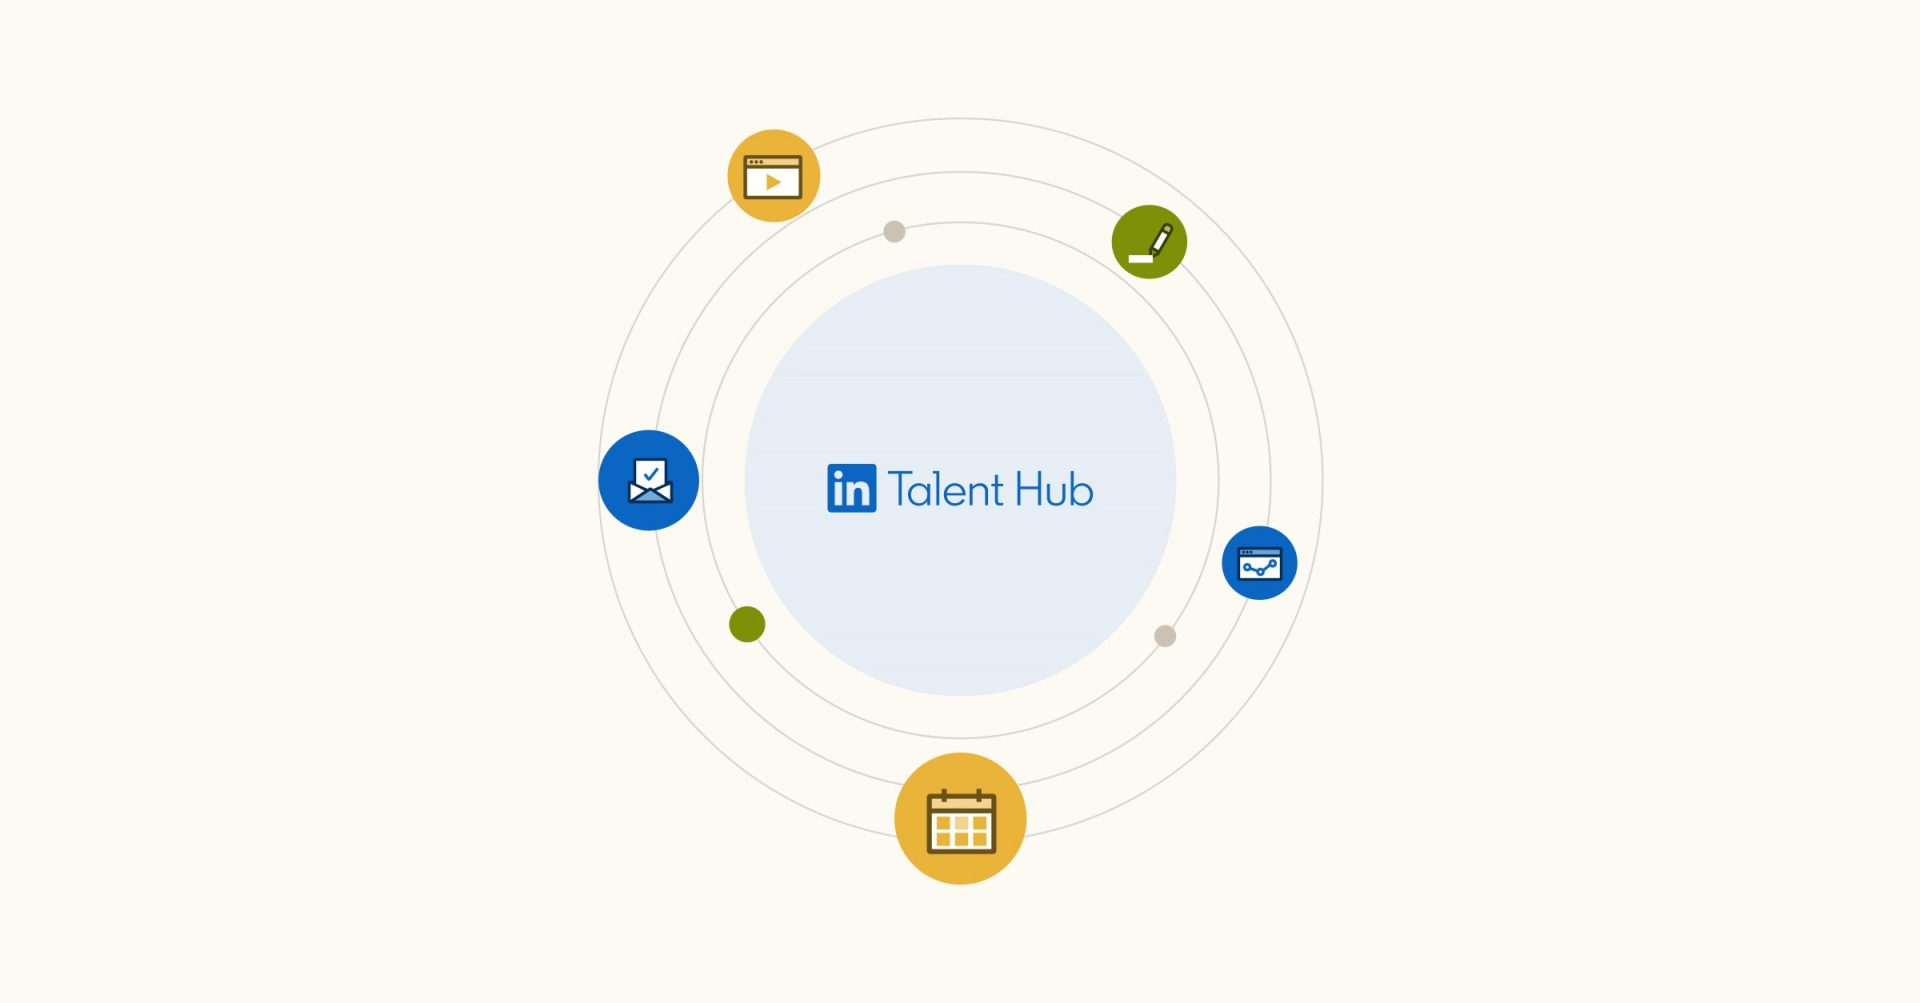 SD Times news digest: HackerRank partners with LinkedIn on talent hub, Appdome's solution to secure APIs in mobile apps, and Codacy raises $7.7 million